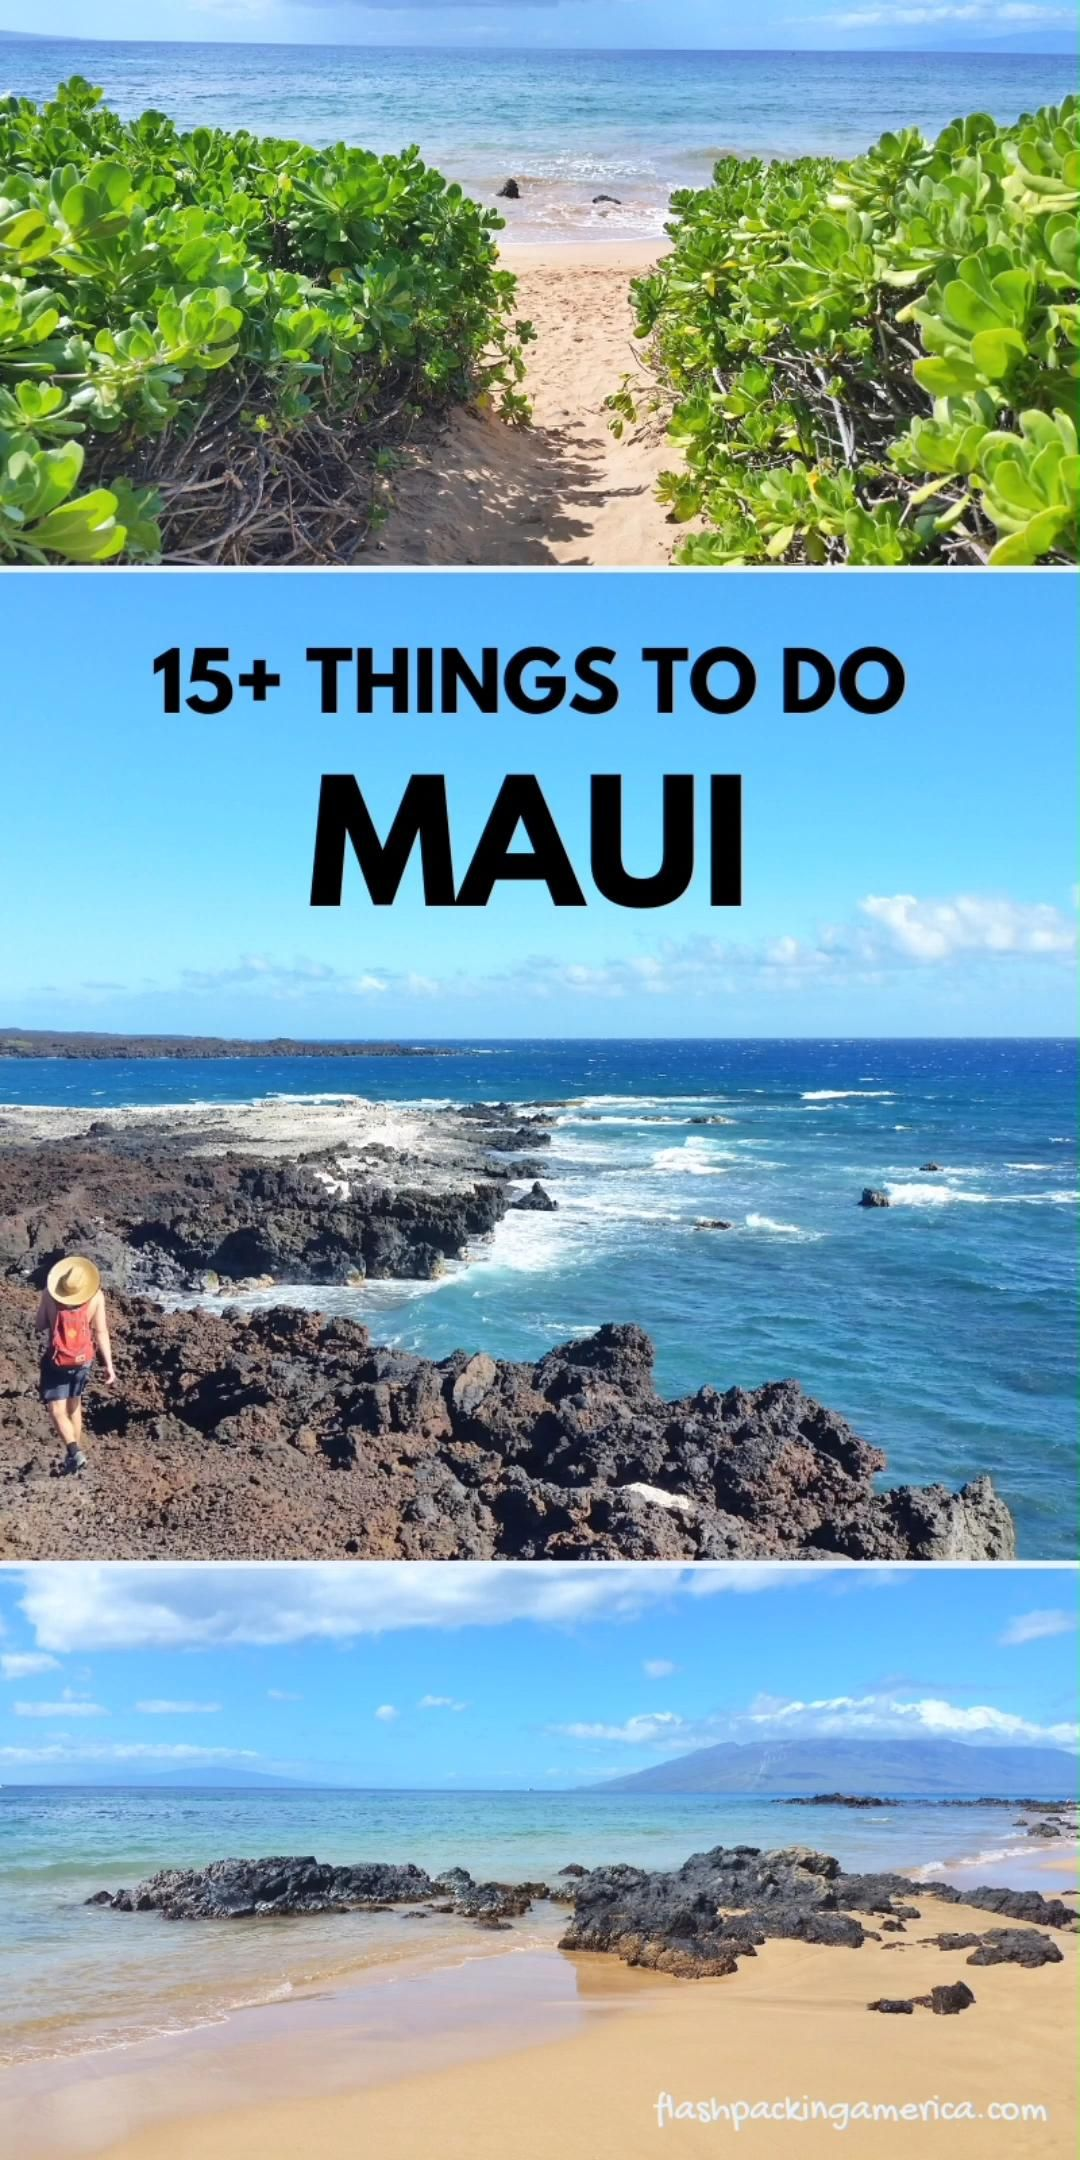 List of great things to do in Maui Hawaii - US bea